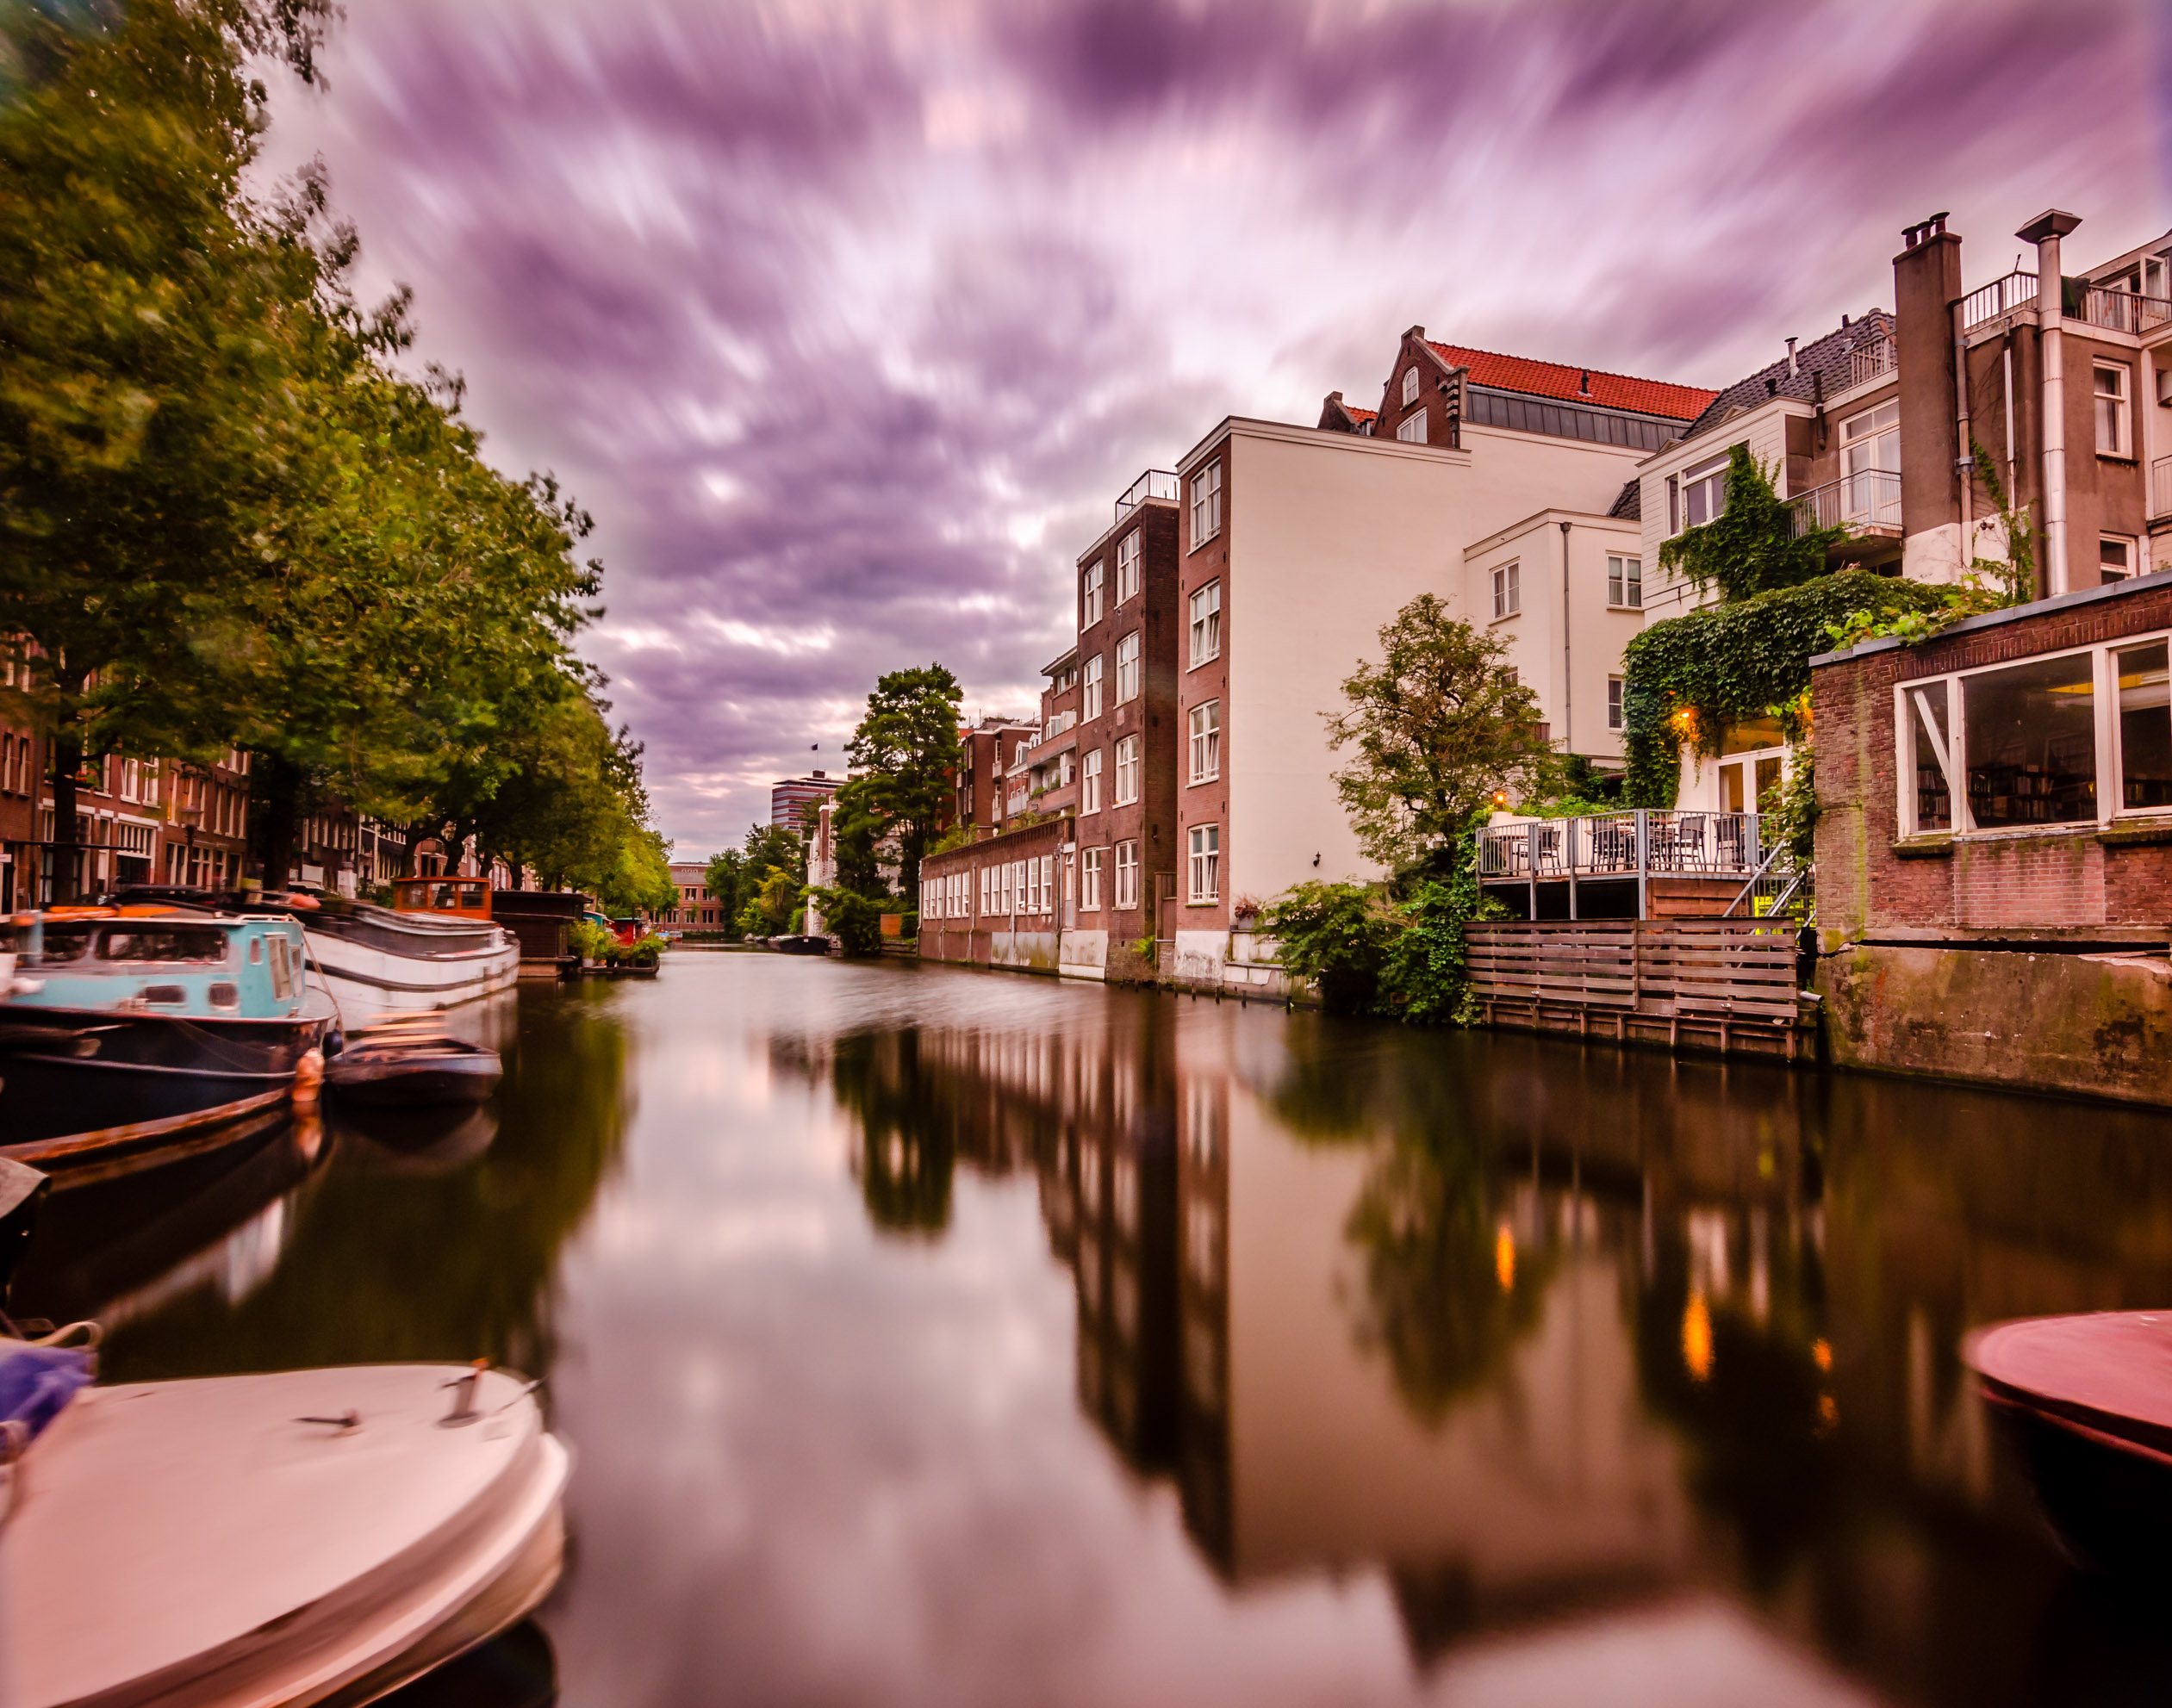 Water and Clouds – Companions of Architecture in Amsterdam